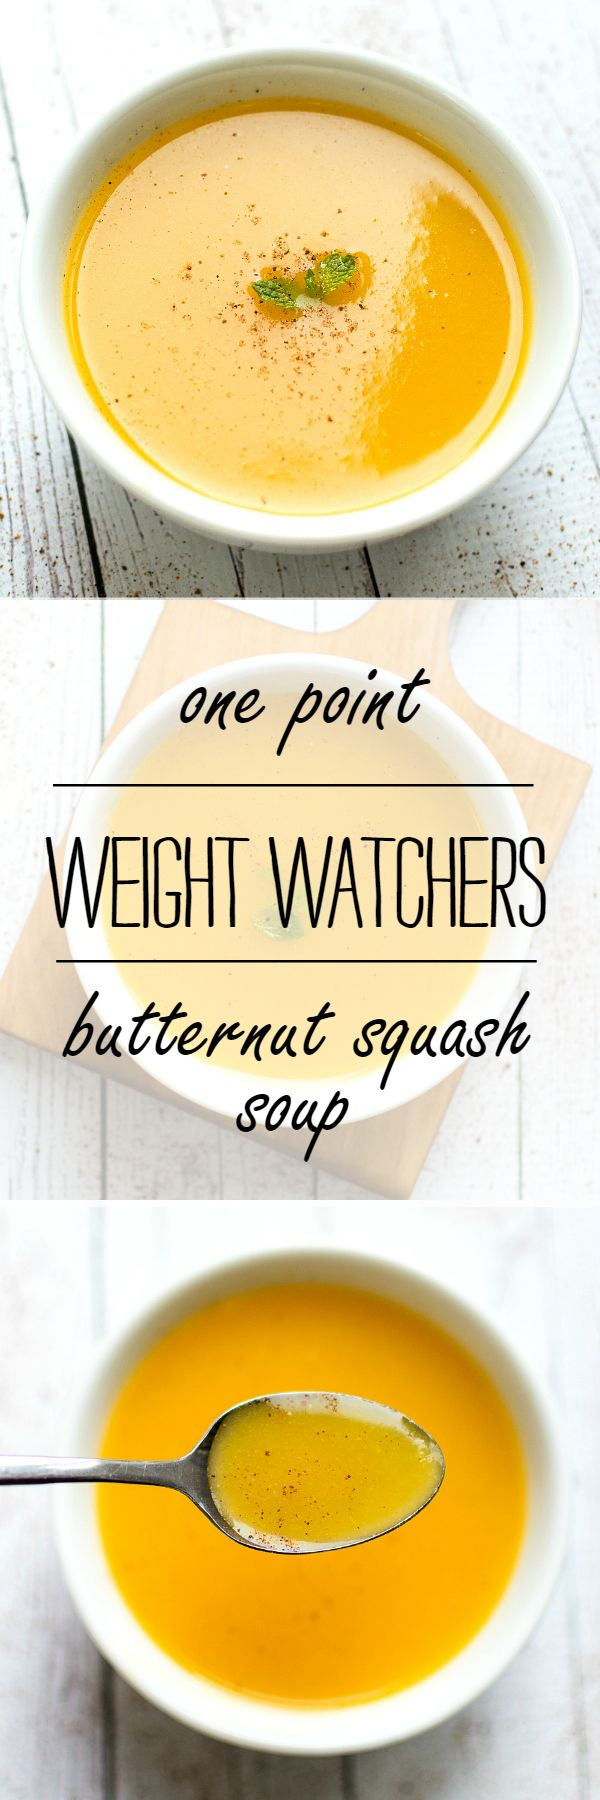 One Point Weight Watchers Butternut Squash Soup | Weight Watchers Recipe Ideas @ It All Started With Paint